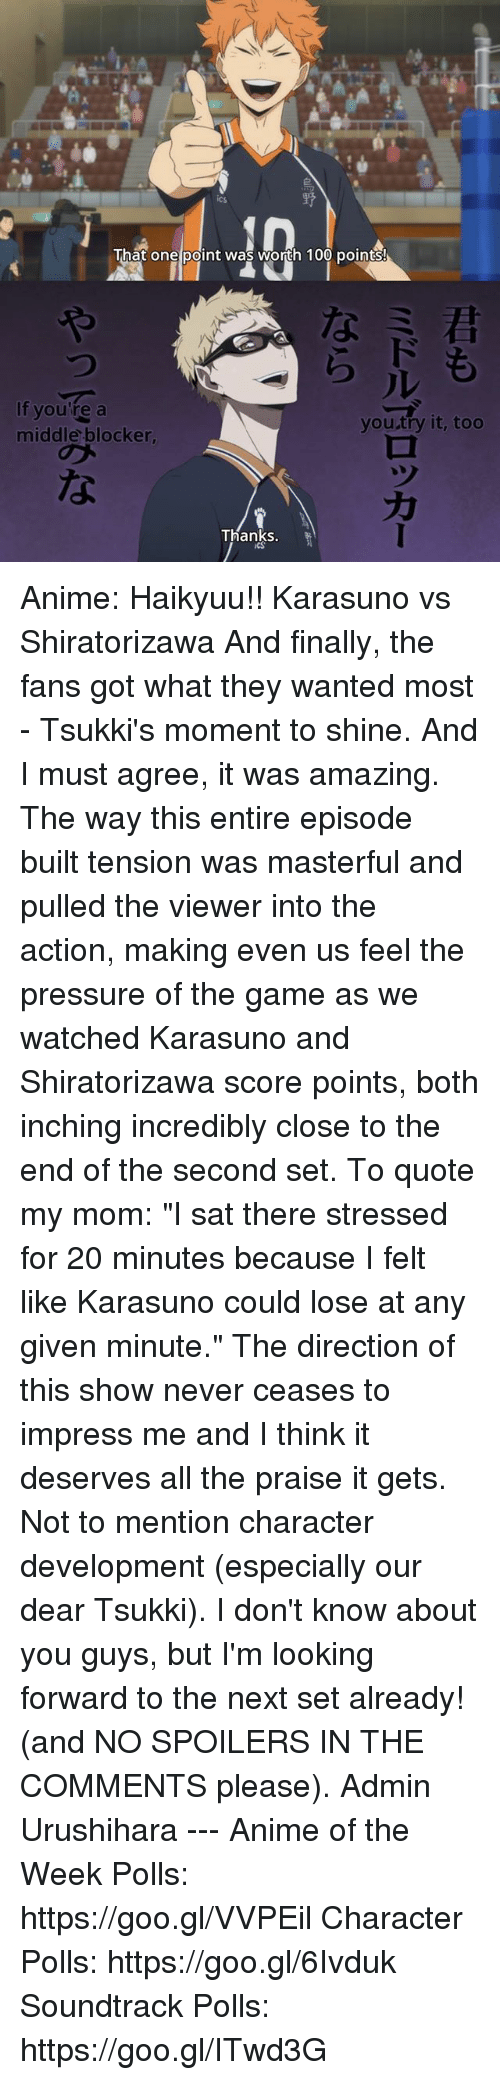 """Animals, Finals, and Memes: That one point was worth 100 points!  If you're a  you try it, too  middle blocker,  Thanks. Anime: Haikyuu!! Karasuno vs Shiratorizawa  And finally, the fans got what they wanted most - Tsukki's moment to shine.  And I must agree, it was amazing. The way this entire episode built tension was masterful and pulled the viewer into the action, making even us feel the pressure of the game as we watched Karasuno and Shiratorizawa score points, both inching incredibly close to the end of the second set.  To quote my mom: """"I sat there stressed for 20 minutes because I felt like Karasuno could lose at any given minute.""""  The direction of this show never ceases to impress me and I think it deserves all the praise it gets. Not to mention character development (especially our dear Tsukki).  I don't know about you guys, but I'm looking forward to the next set already! (and NO SPOILERS IN THE COMMENTS please).  Admin Urushihara --- Anime of the Week Polls: https://goo.gl/VVPEil Character Polls: https://goo.gl/6Ivduk Soundtrack Polls: https://goo.gl/ITwd3G"""